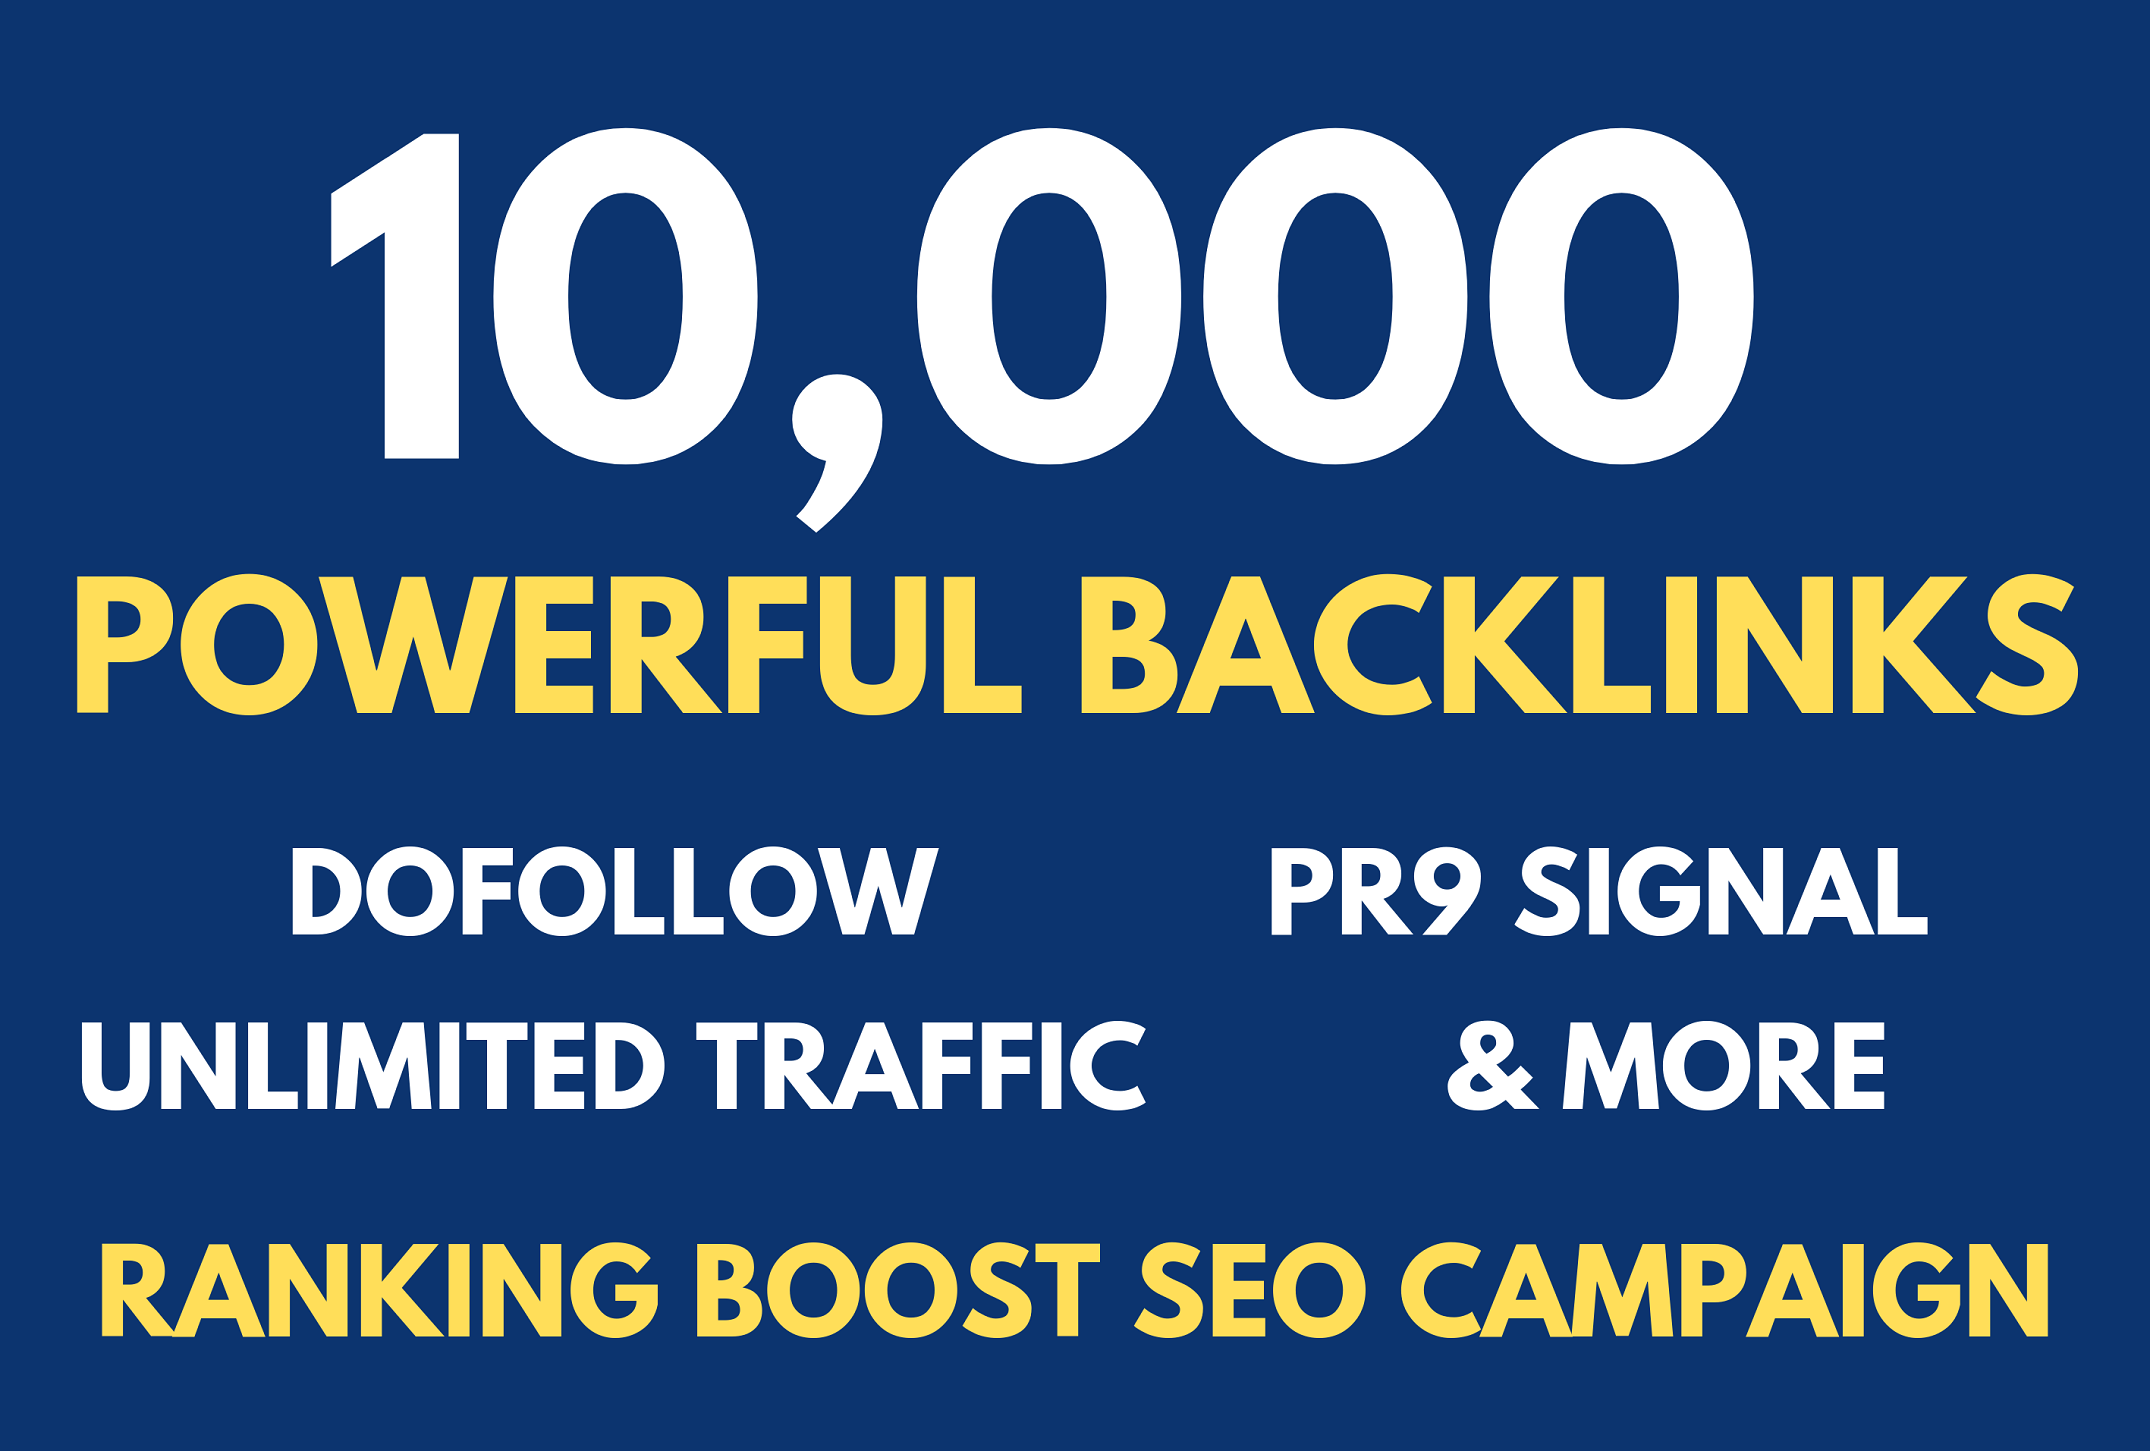 GSA Blast GSA SER to Create 10,000 Backlinks & CRUSH Your Competition